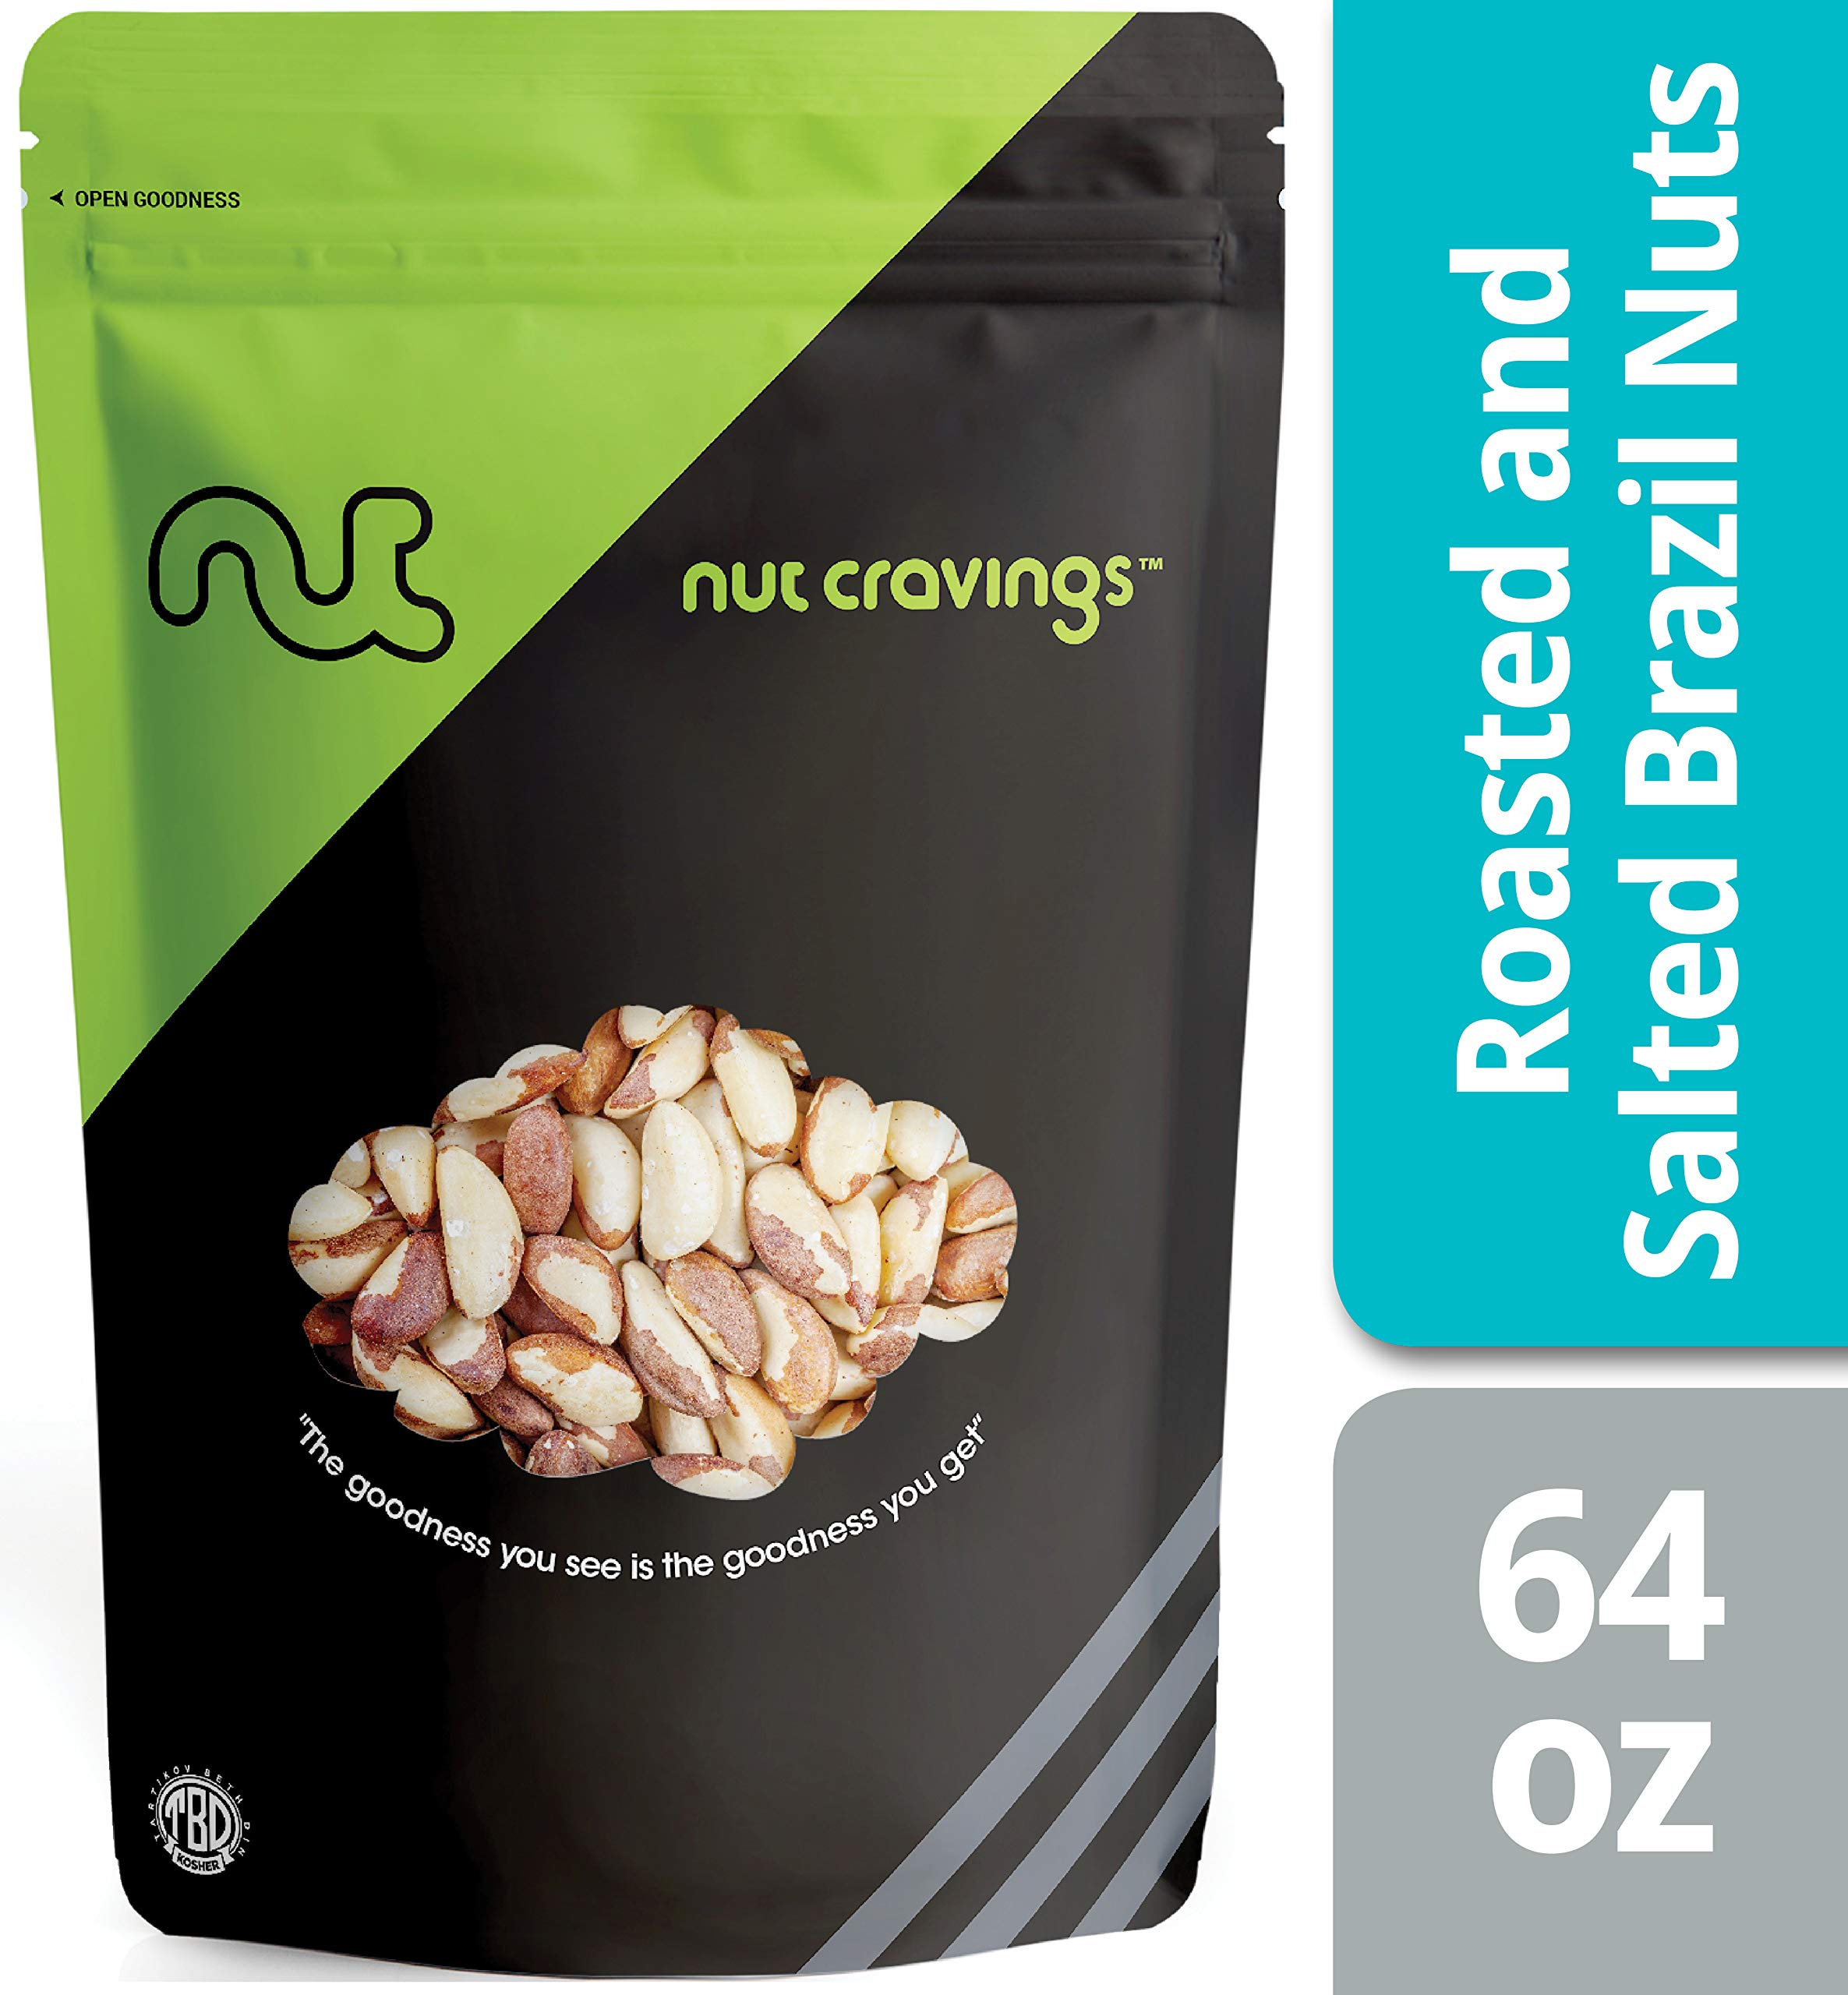 Nut Cravings - Brazil Nuts Roasted & Salted (4 Pounds) - Whole, Roasted, Salted, No Shell Brazilian Nuts - 64 Ounce by Nut Cravings